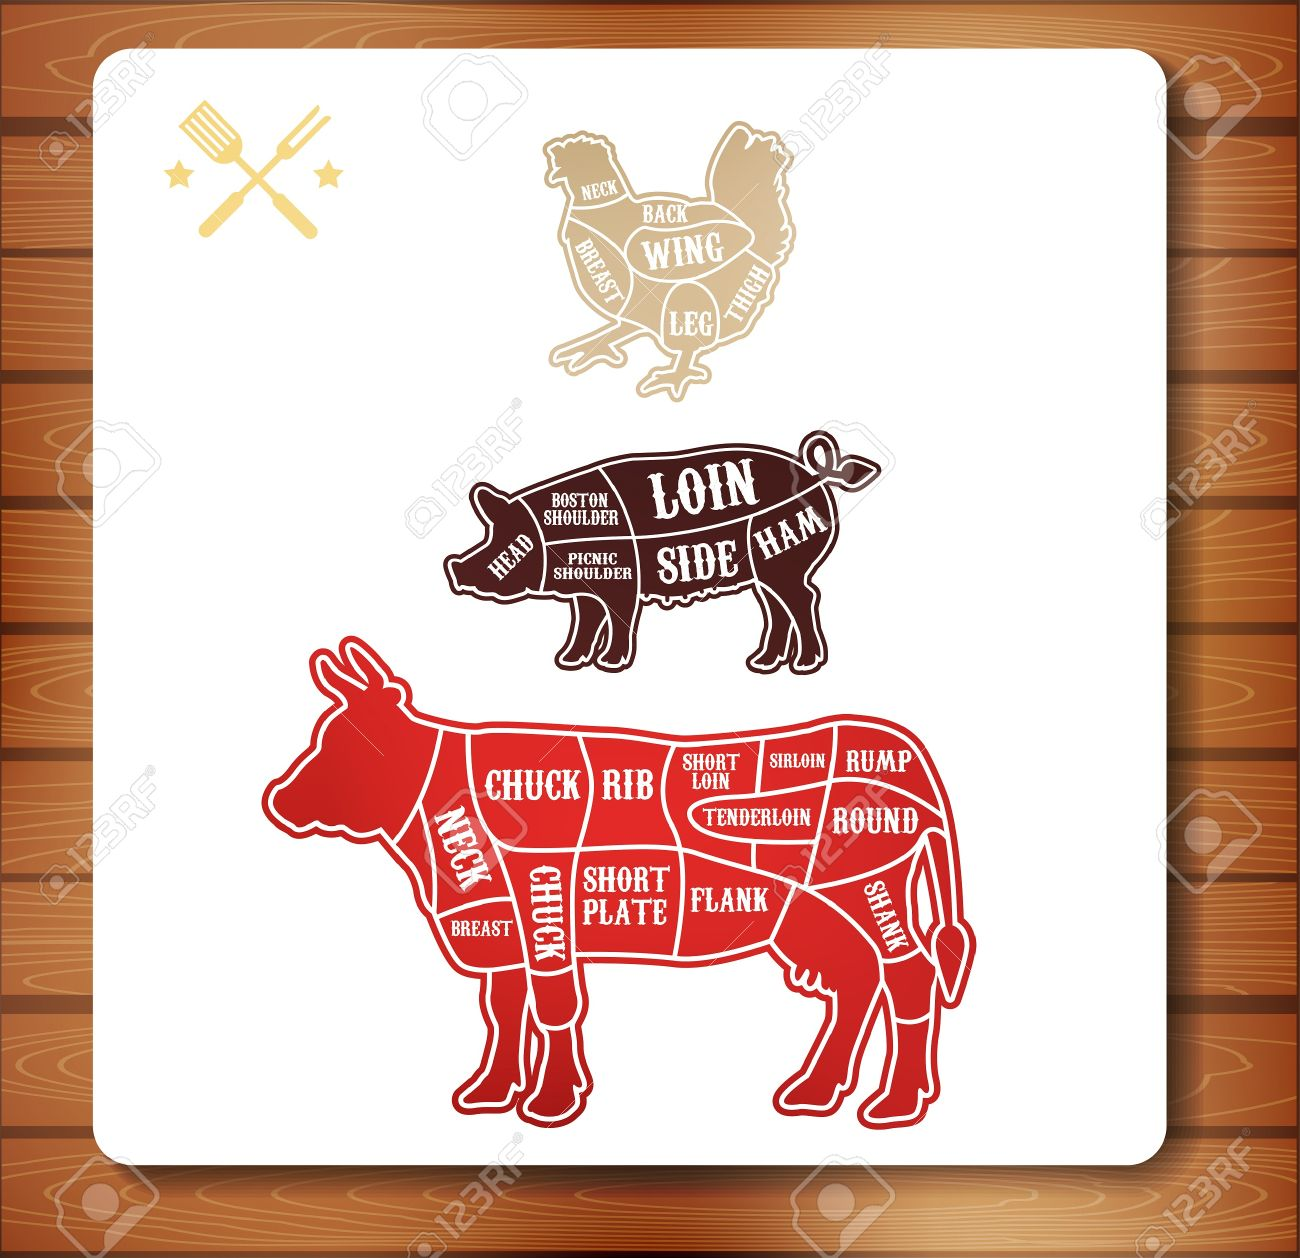 Vector Diagram Cut Carcasses Of Chicken, Pig, Cow Royalty Free ...